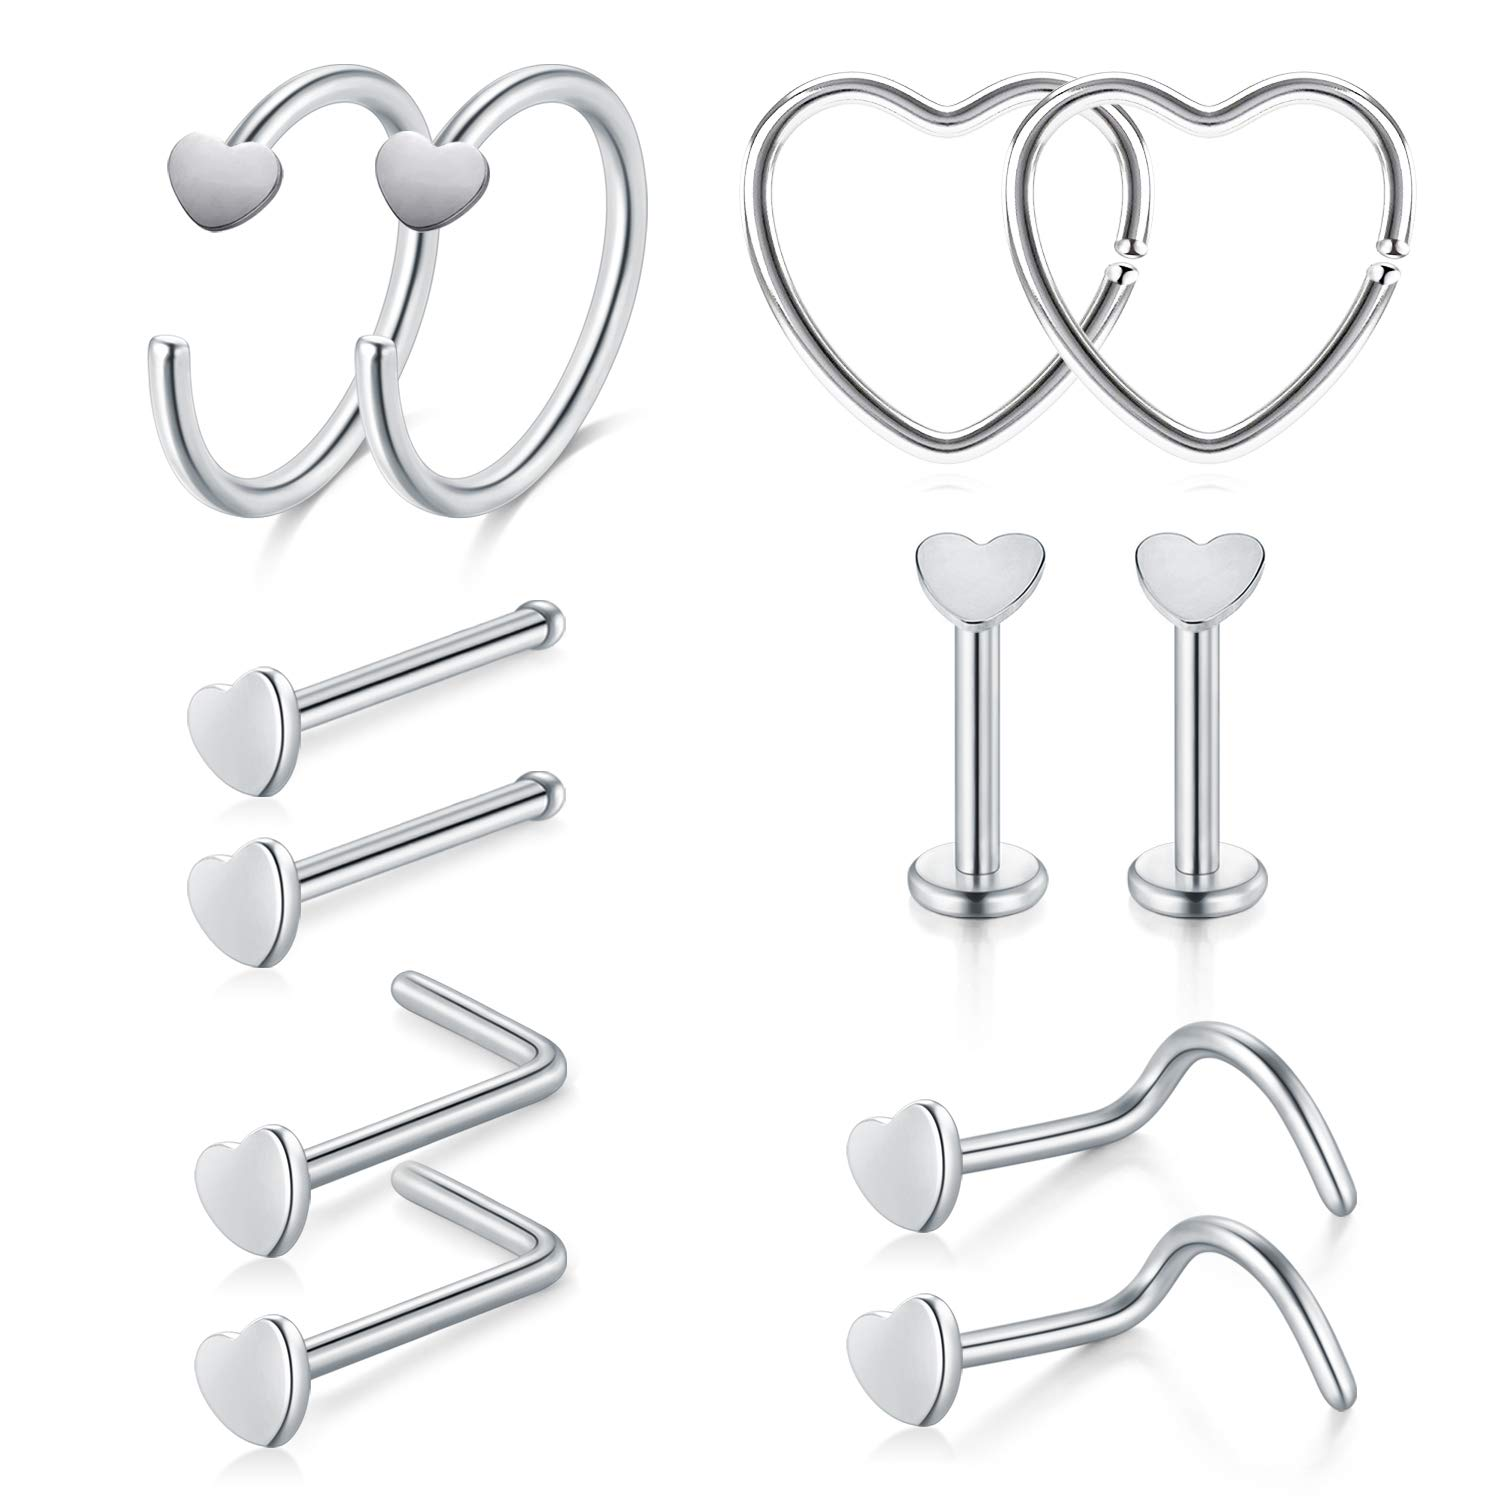 Vcmart 22g 316l Stainless Steel Nose Rings Hoop Tragus Cartilage